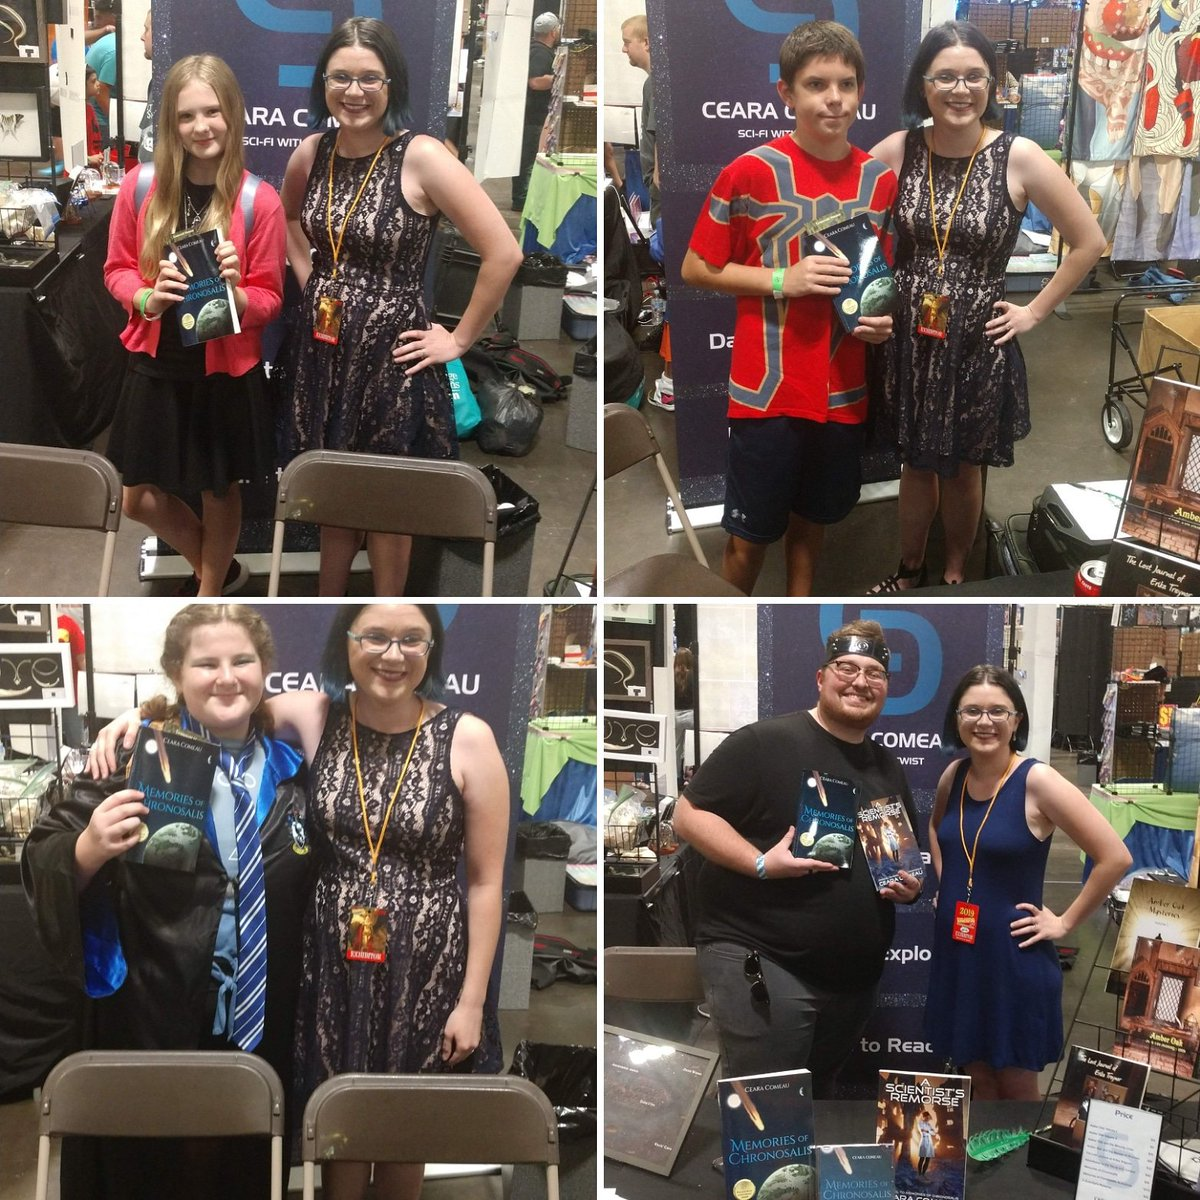 I now have fans in Florida! Tampa Bay Comic Con didn't disappoint! :) #bestpart #event #tampabaycomiccon #untilnextyear #newfans #friends #nextgeneration #scifi #fantasy #authorslife #writerslife #readers<br>http://pic.twitter.com/PML2tIiGFs